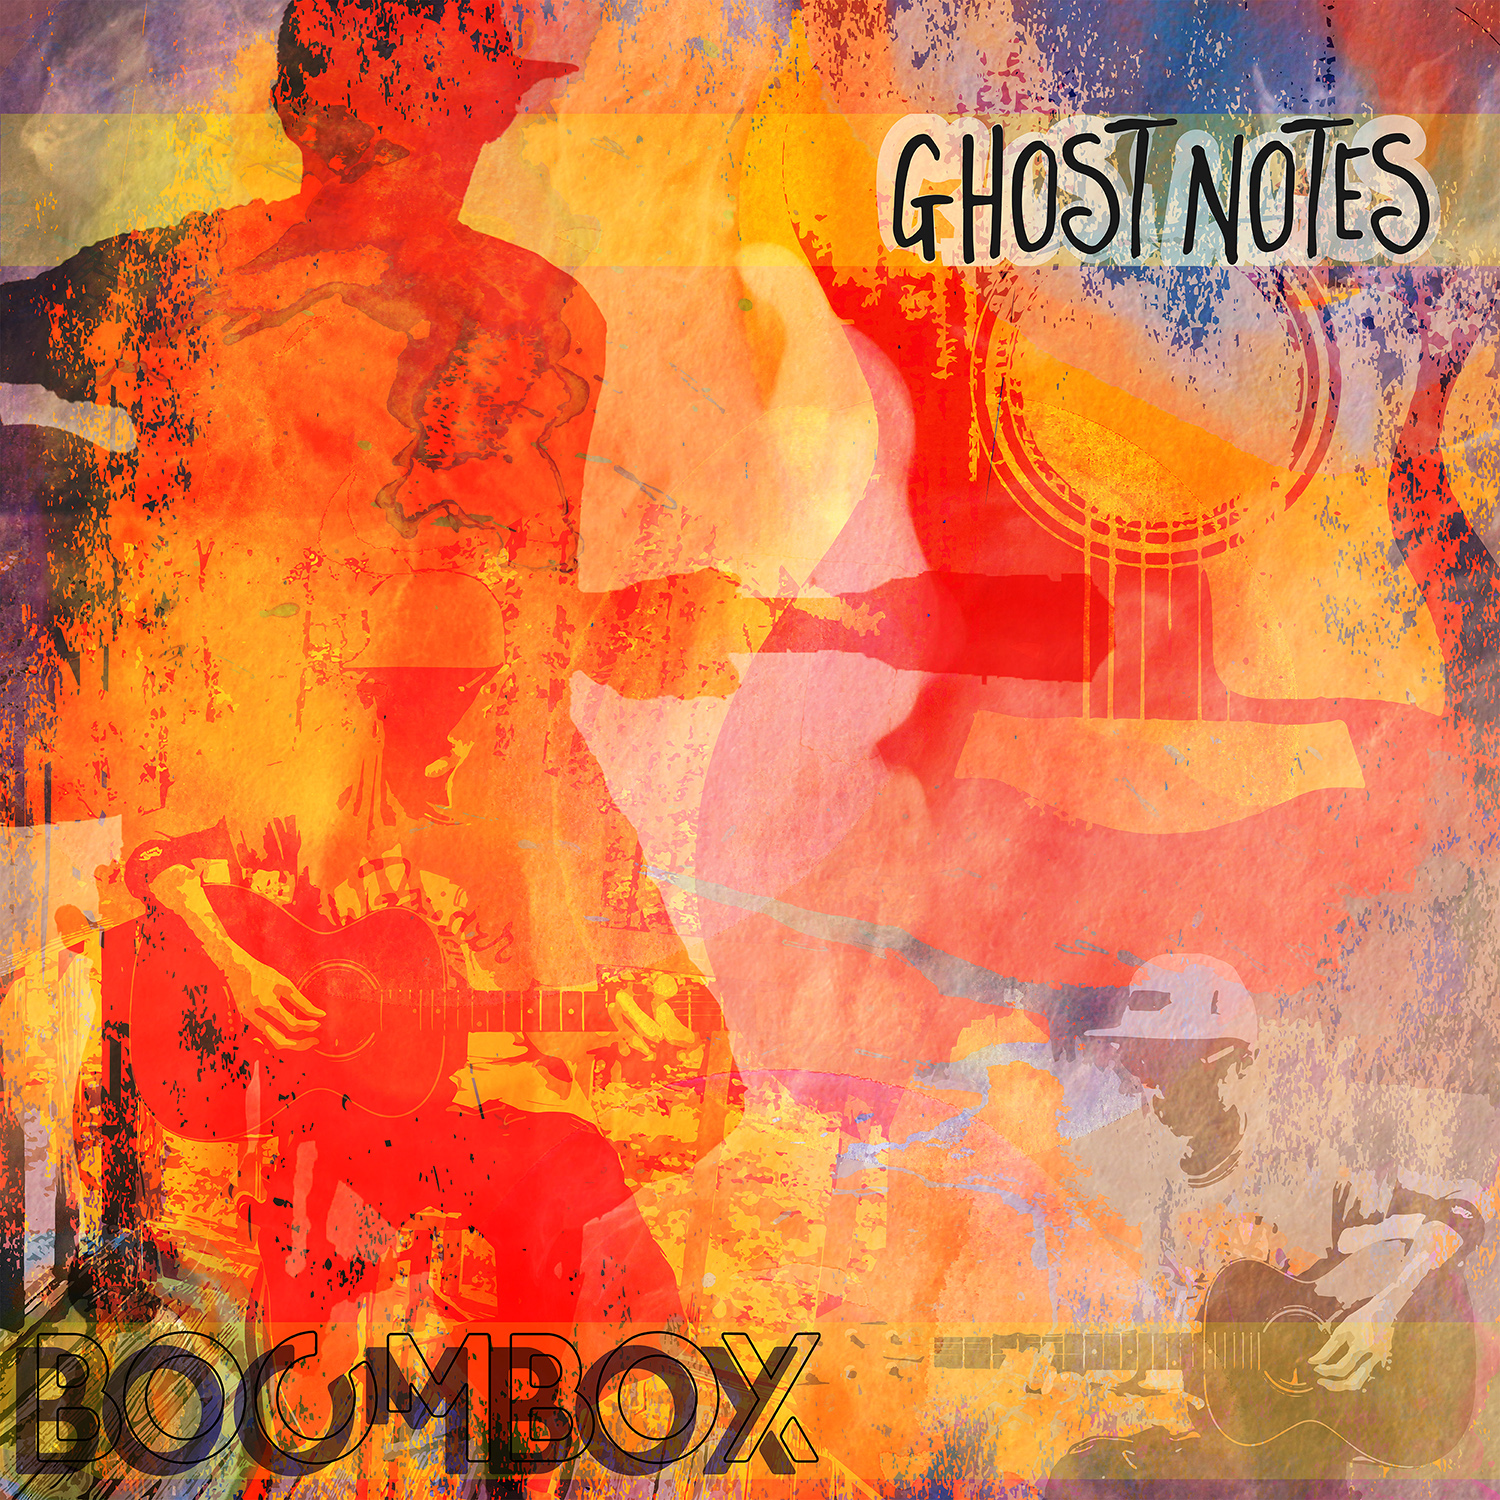 [NEW ALBUM] GHOST NOTES OUT NOW!